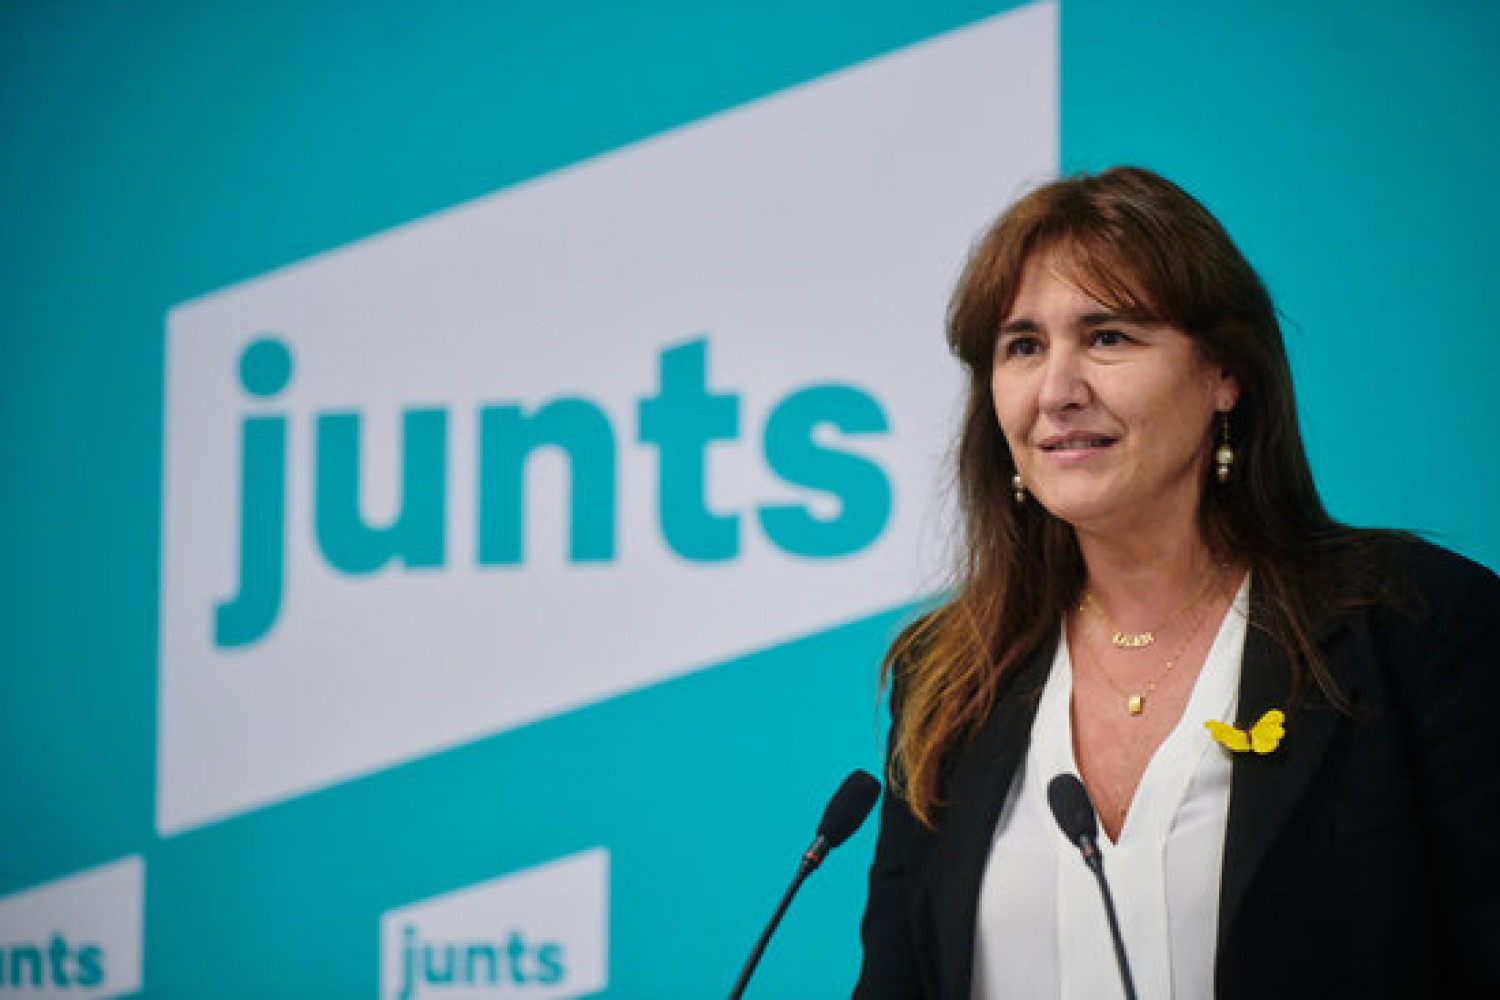 Junts per Catalunya's presidential candidate for February 2021 elections, Laura Borràs, November 29, 2020 (Image: JxCat)